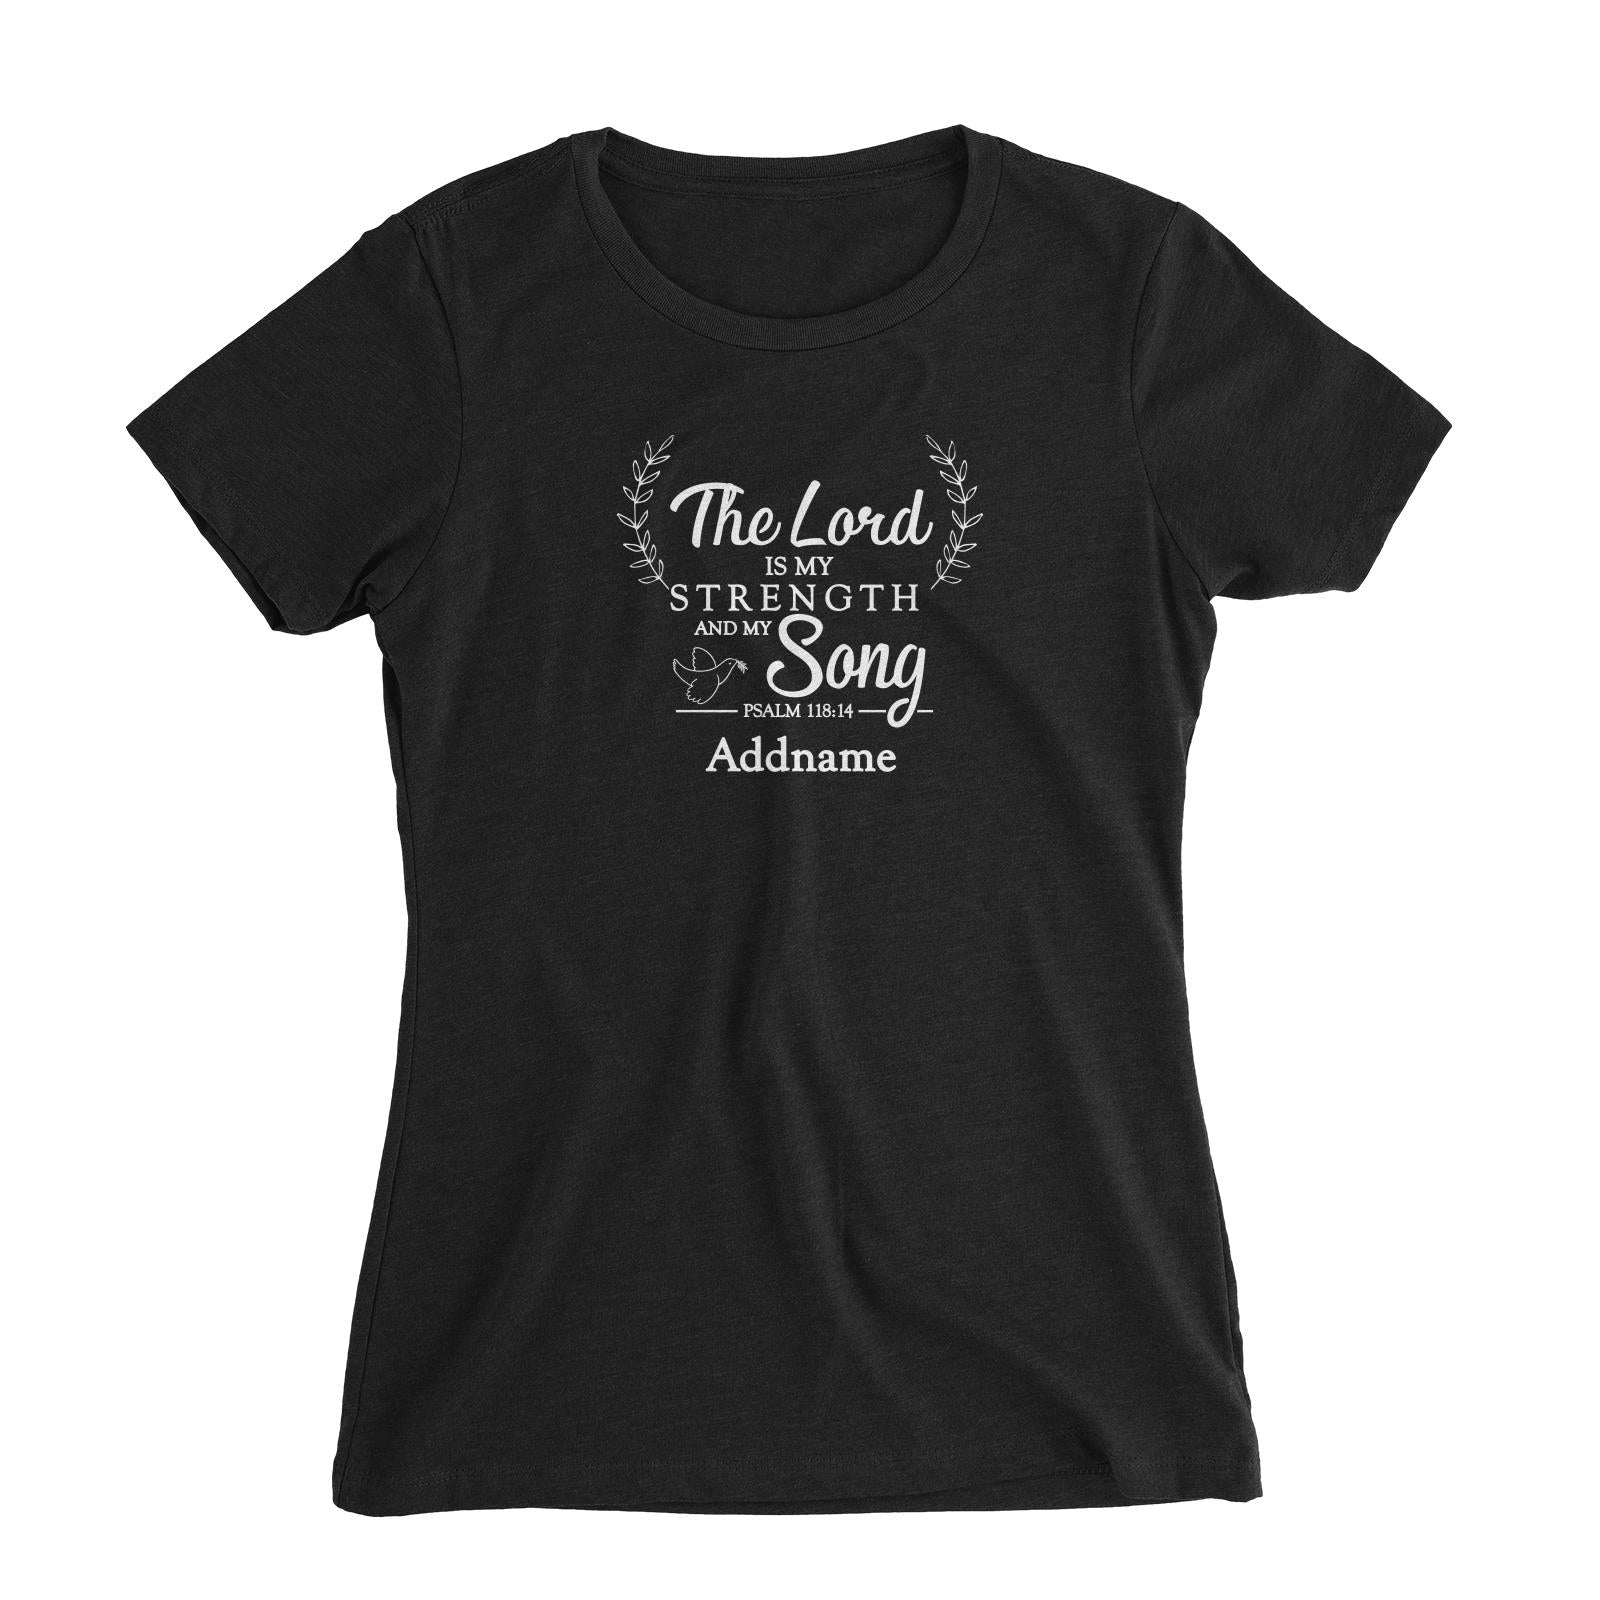 Christian Series The Lord Is My Strength Song Psalm 118.14 Addname Women Slim Fit T-Shirt